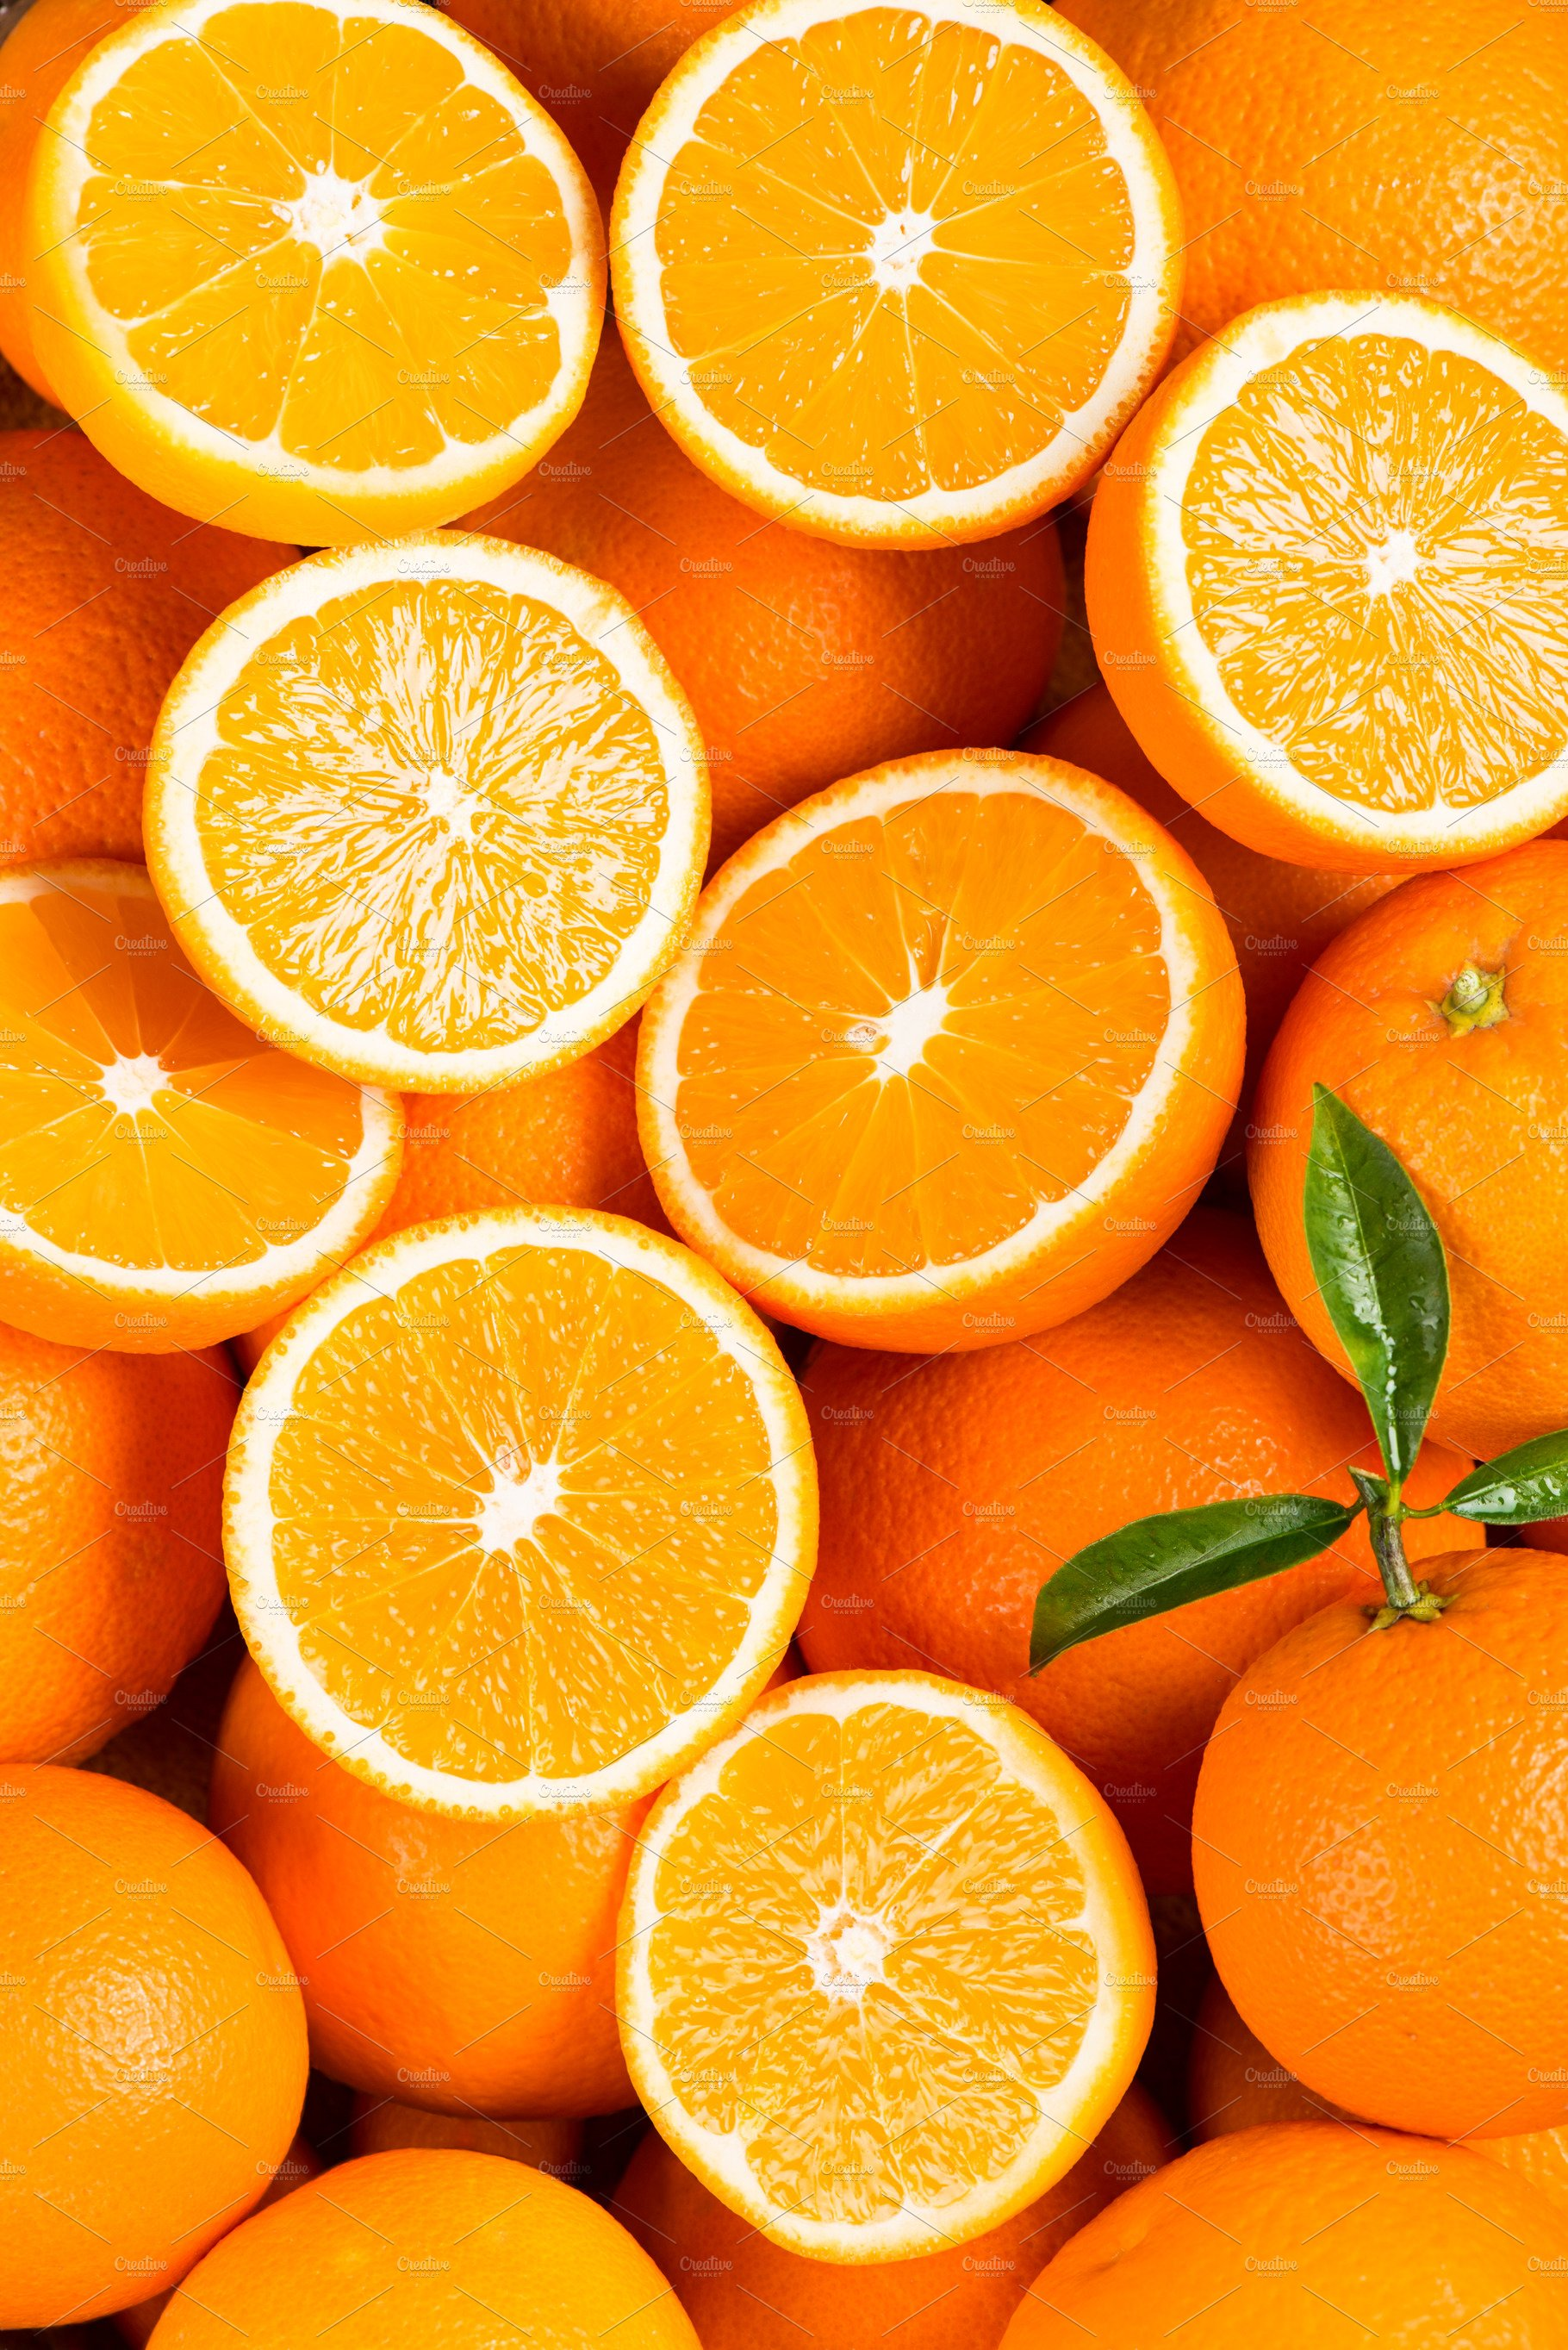 Oranges As The Background High Quality Food Images